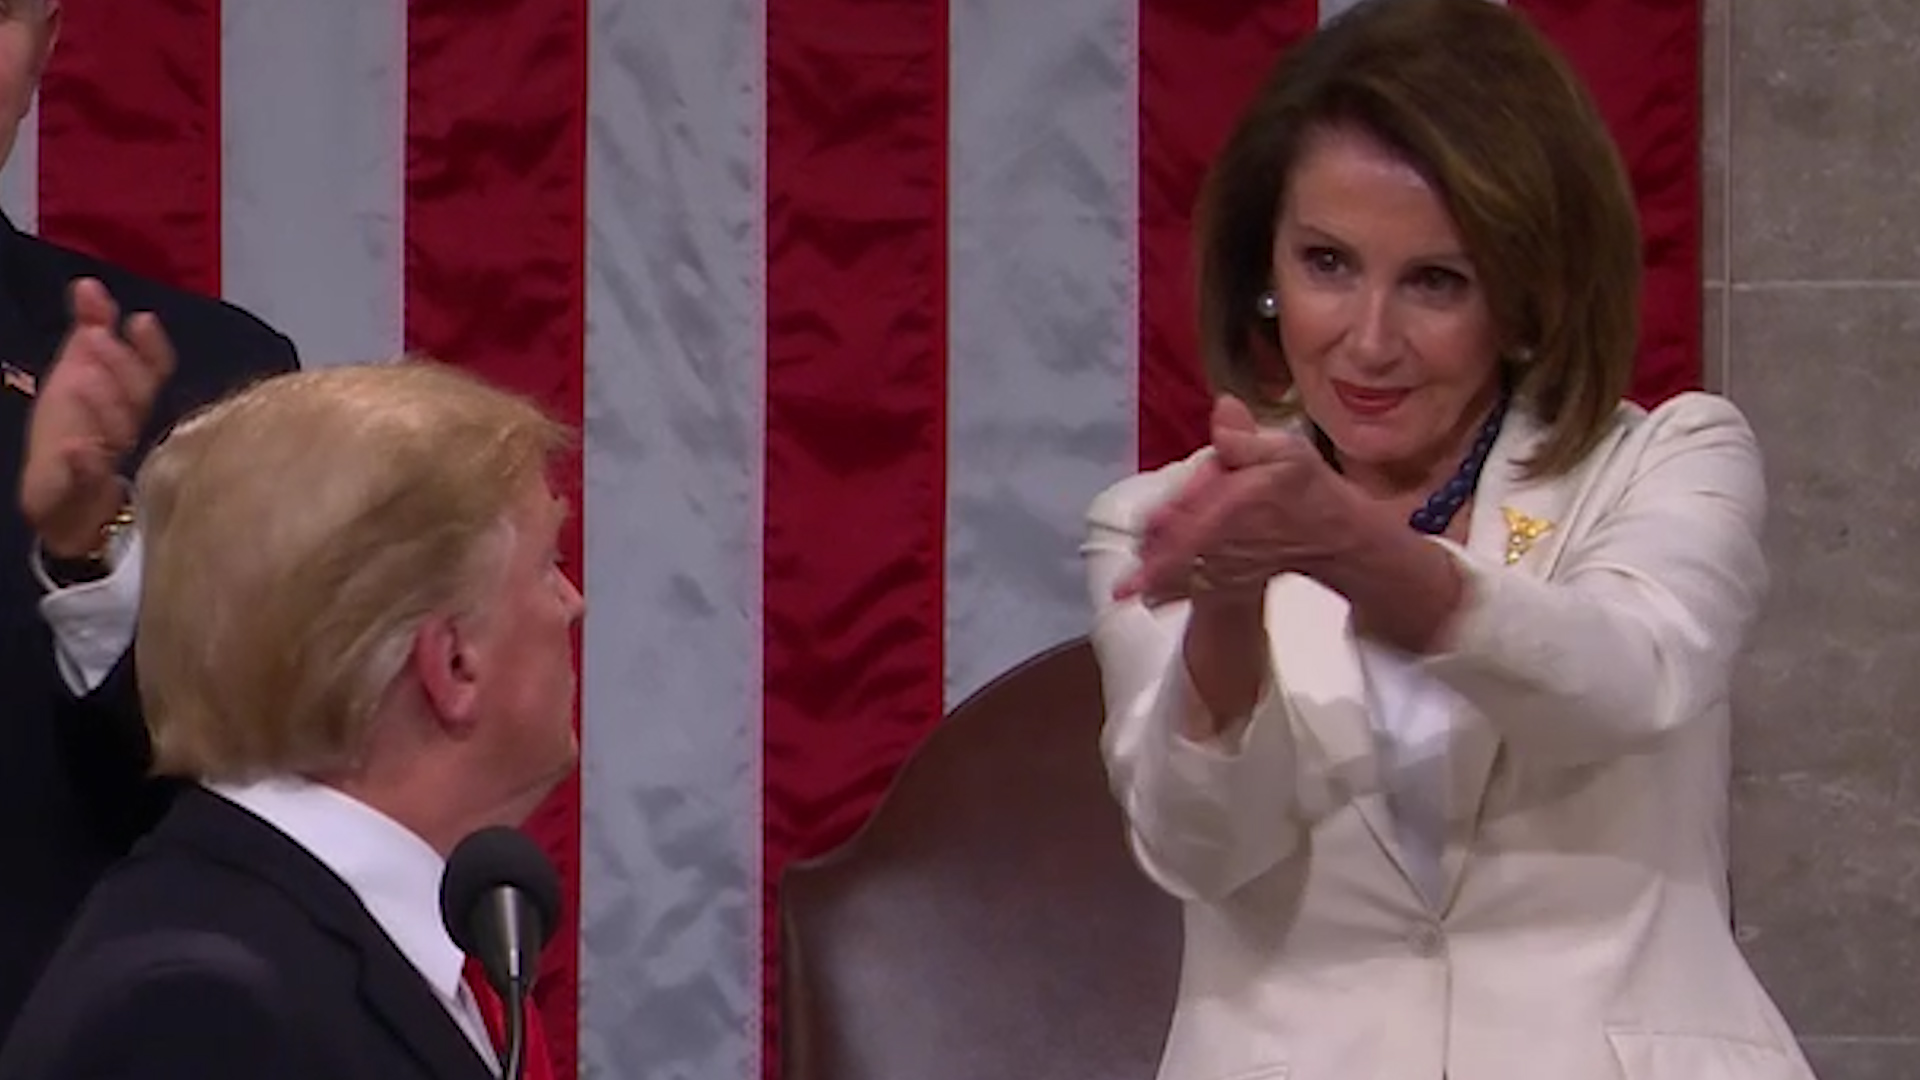 The exquisite shade of Nancy Pelosi's applause at the State of the Union